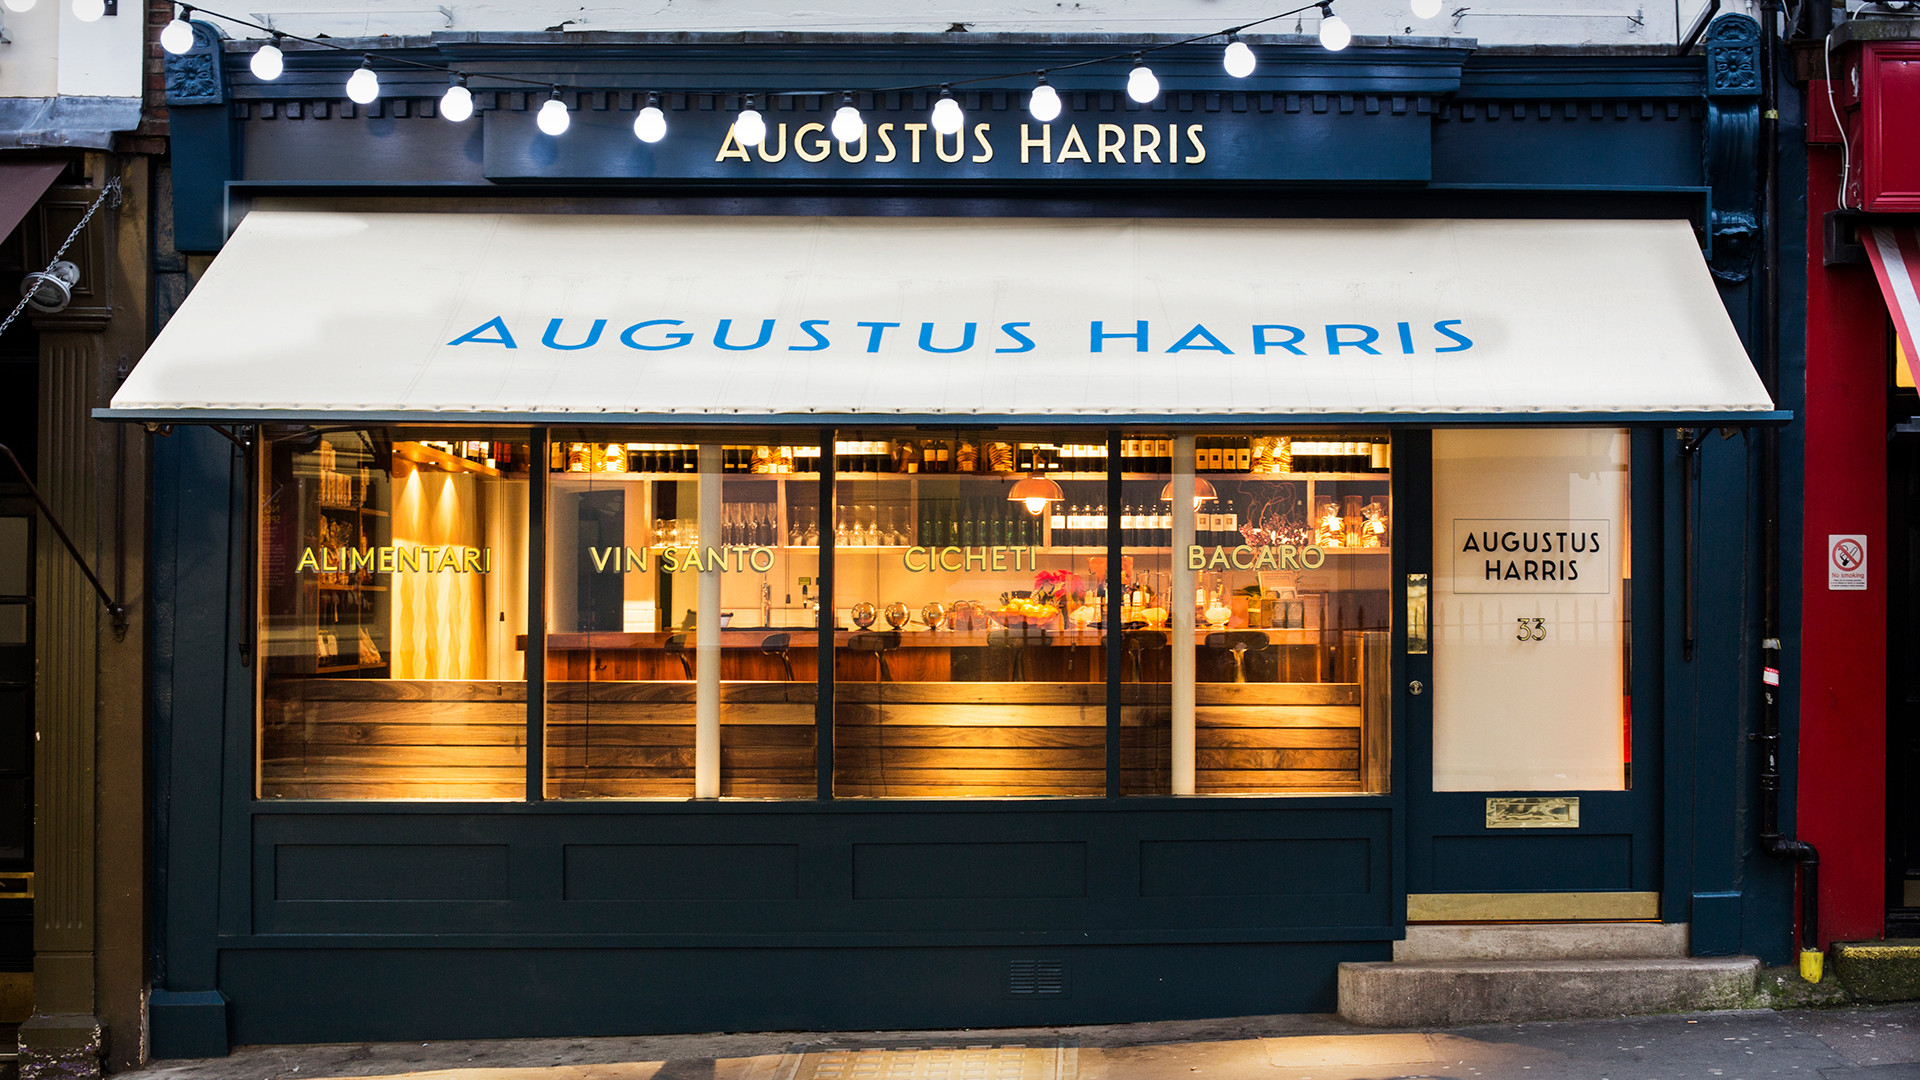 London's best aperitivo bars – Augustus Harris